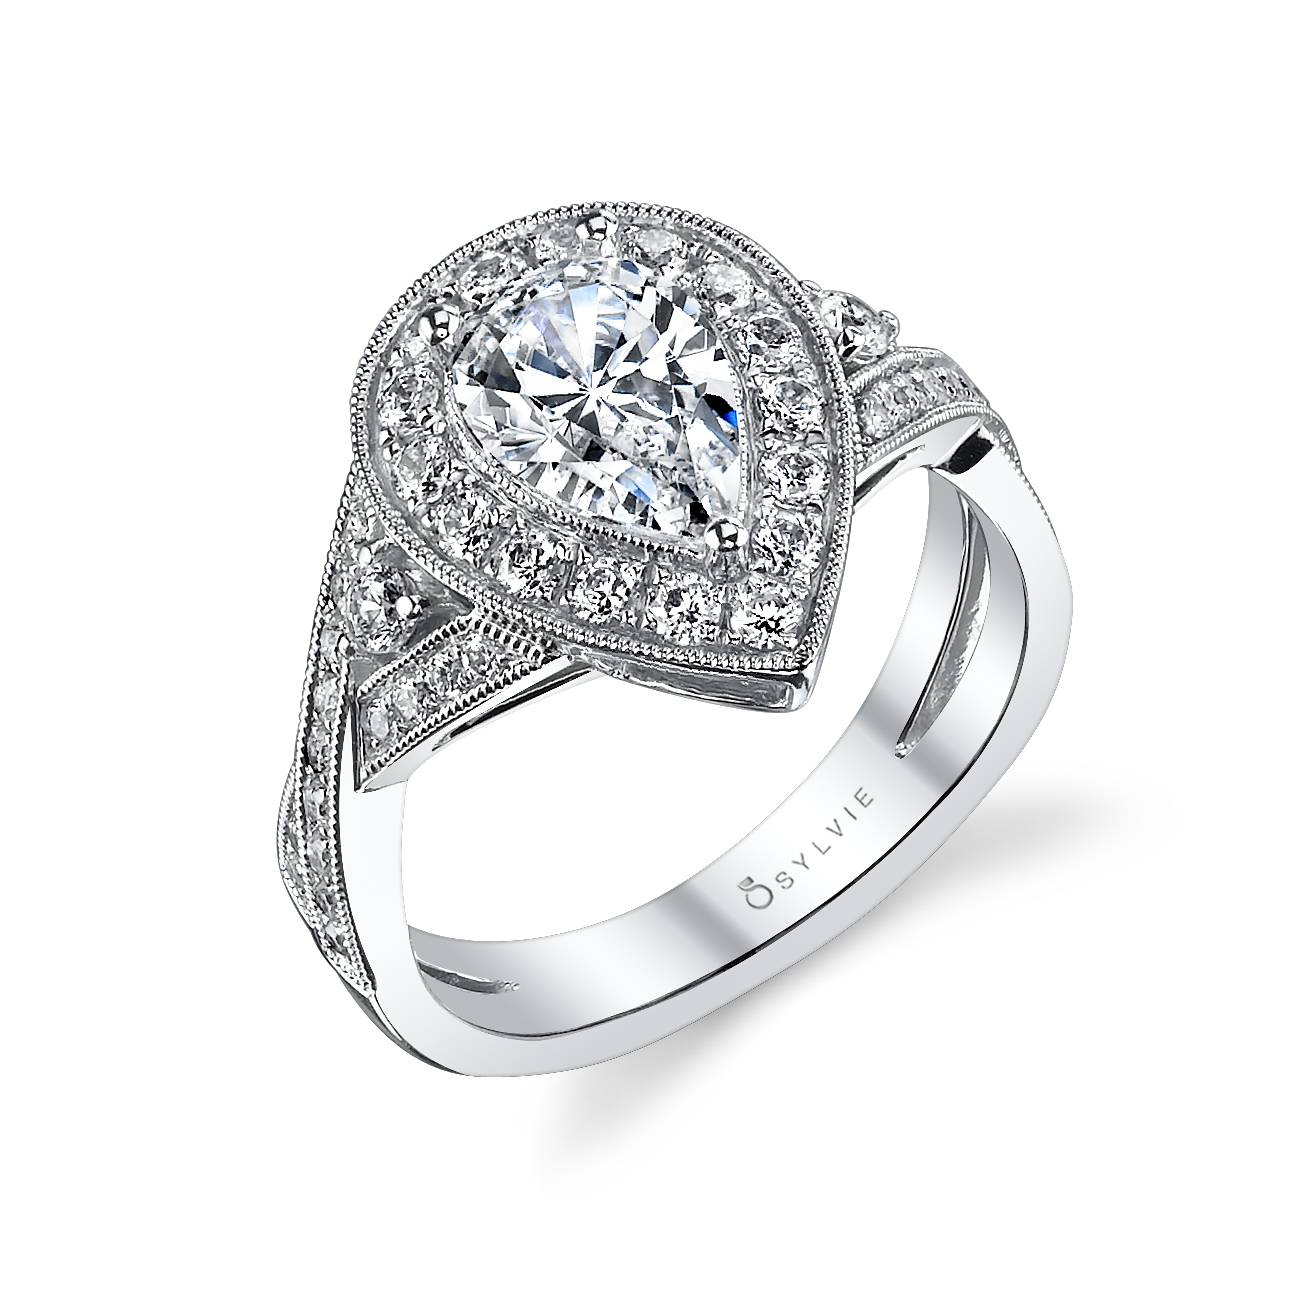 Catherine - Modern Halo Engagement Ring - SY865